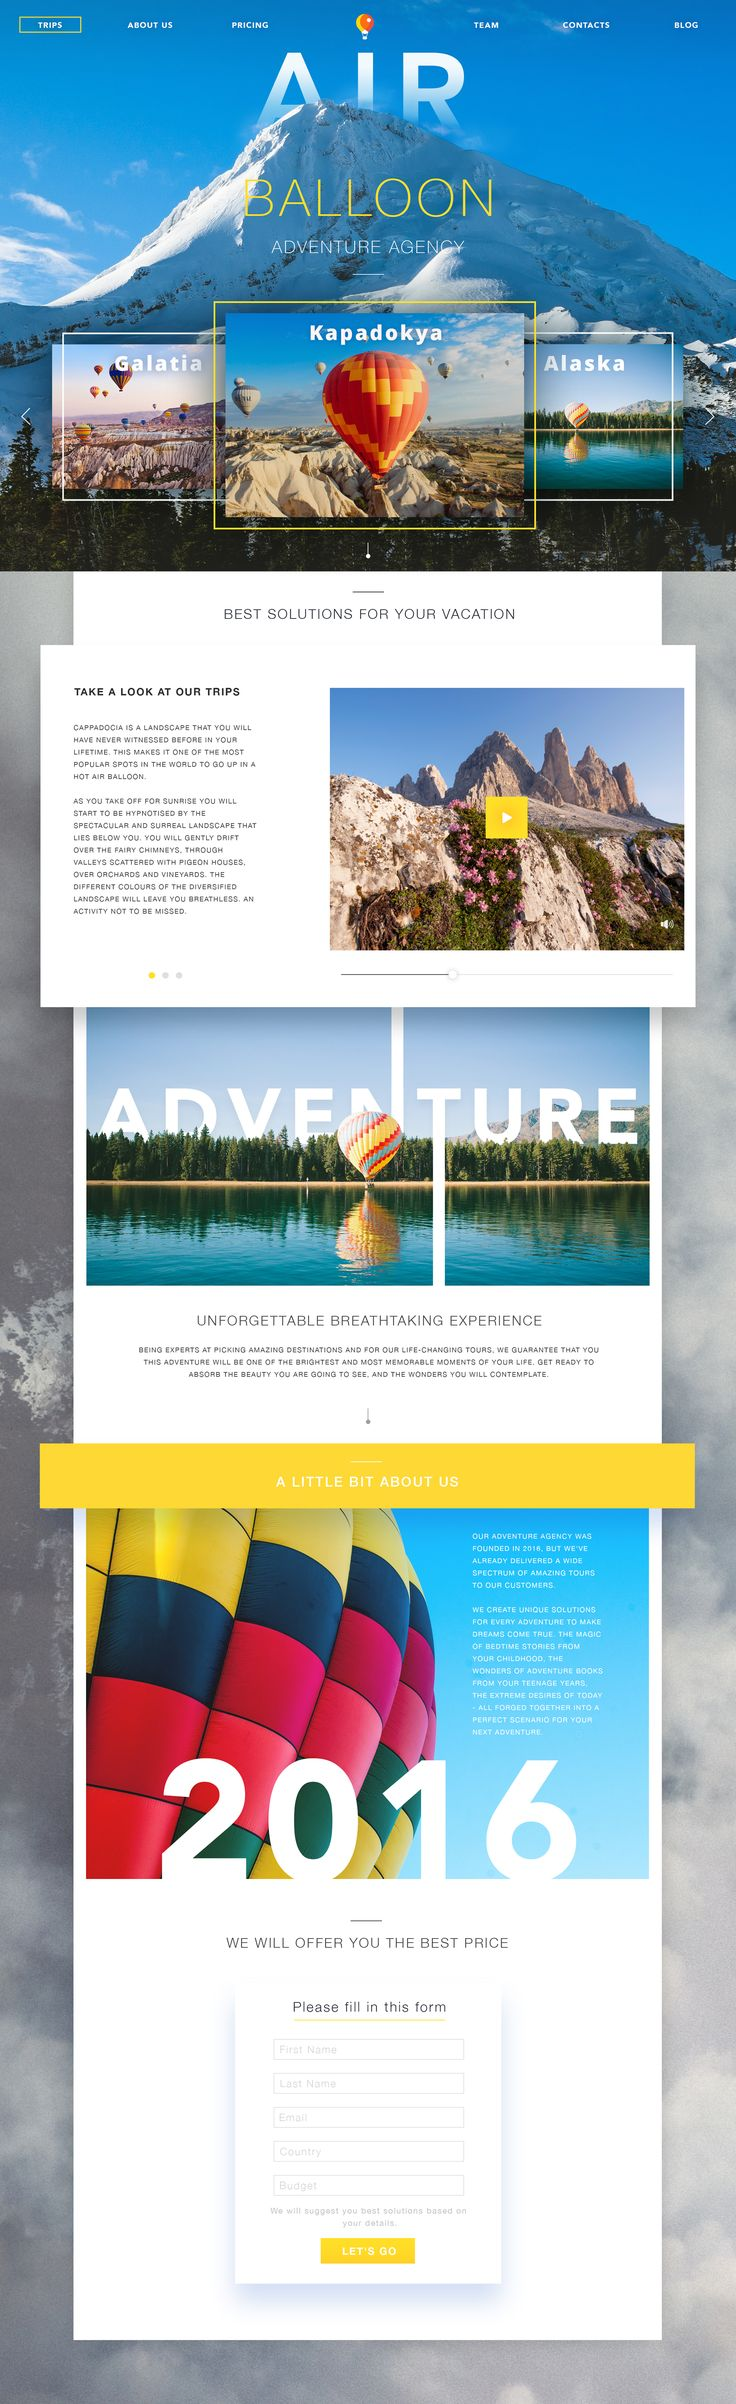 Adventure agency website tubikstudio